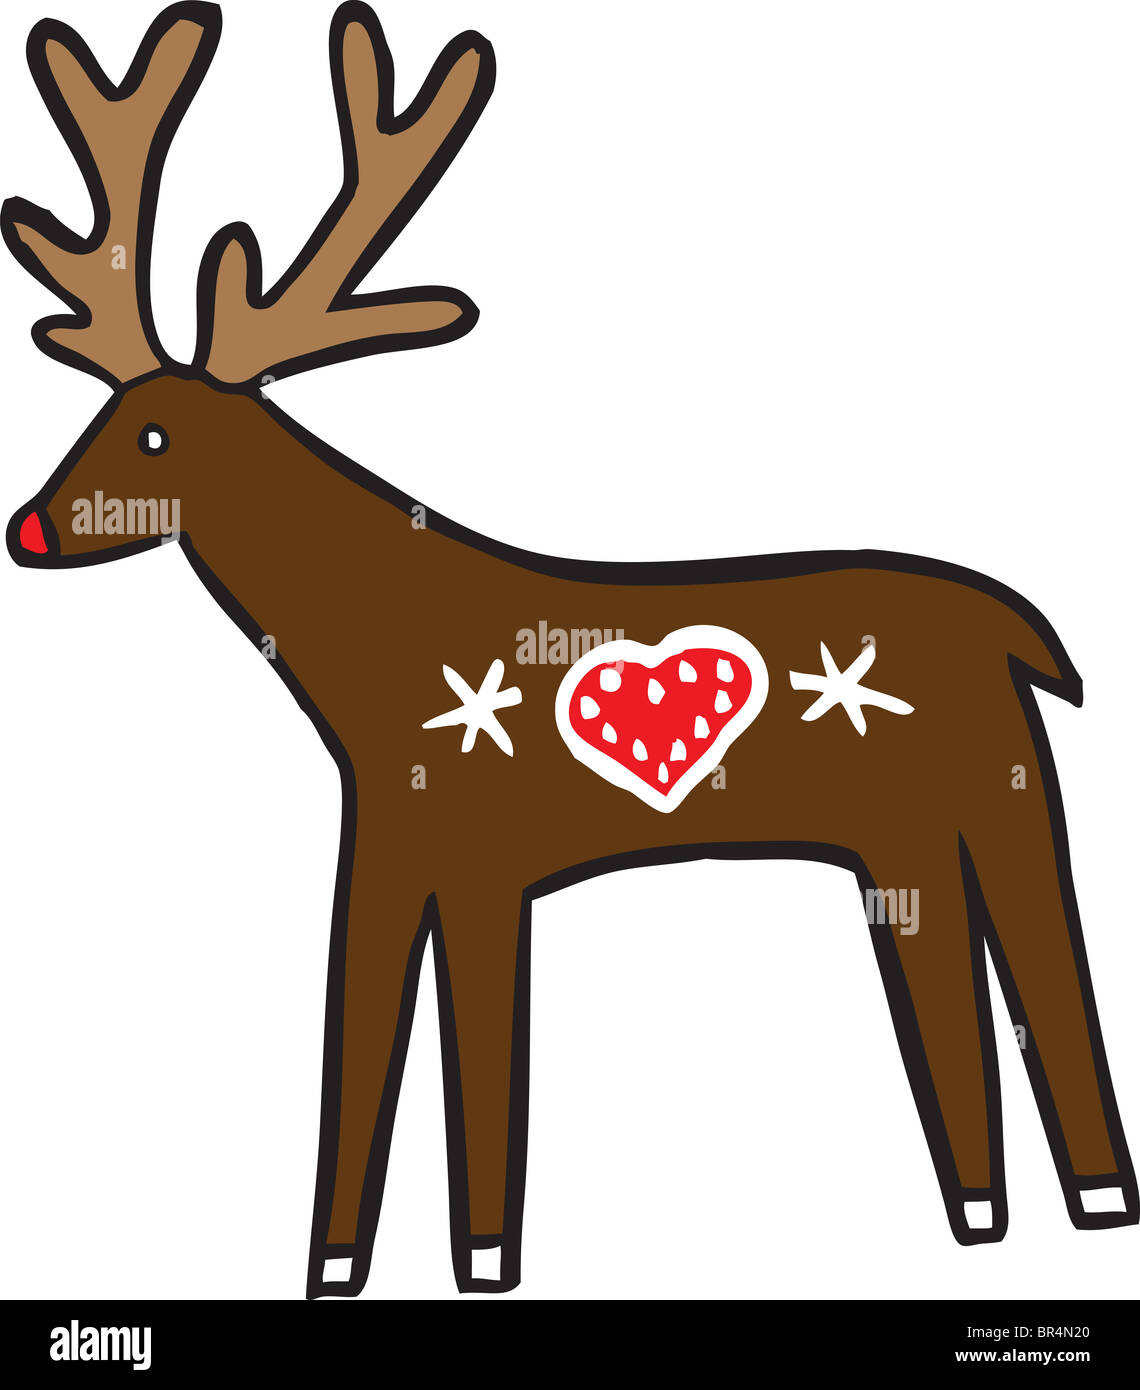 A reindeer with a heart-shape decoration on its body - Stock Image